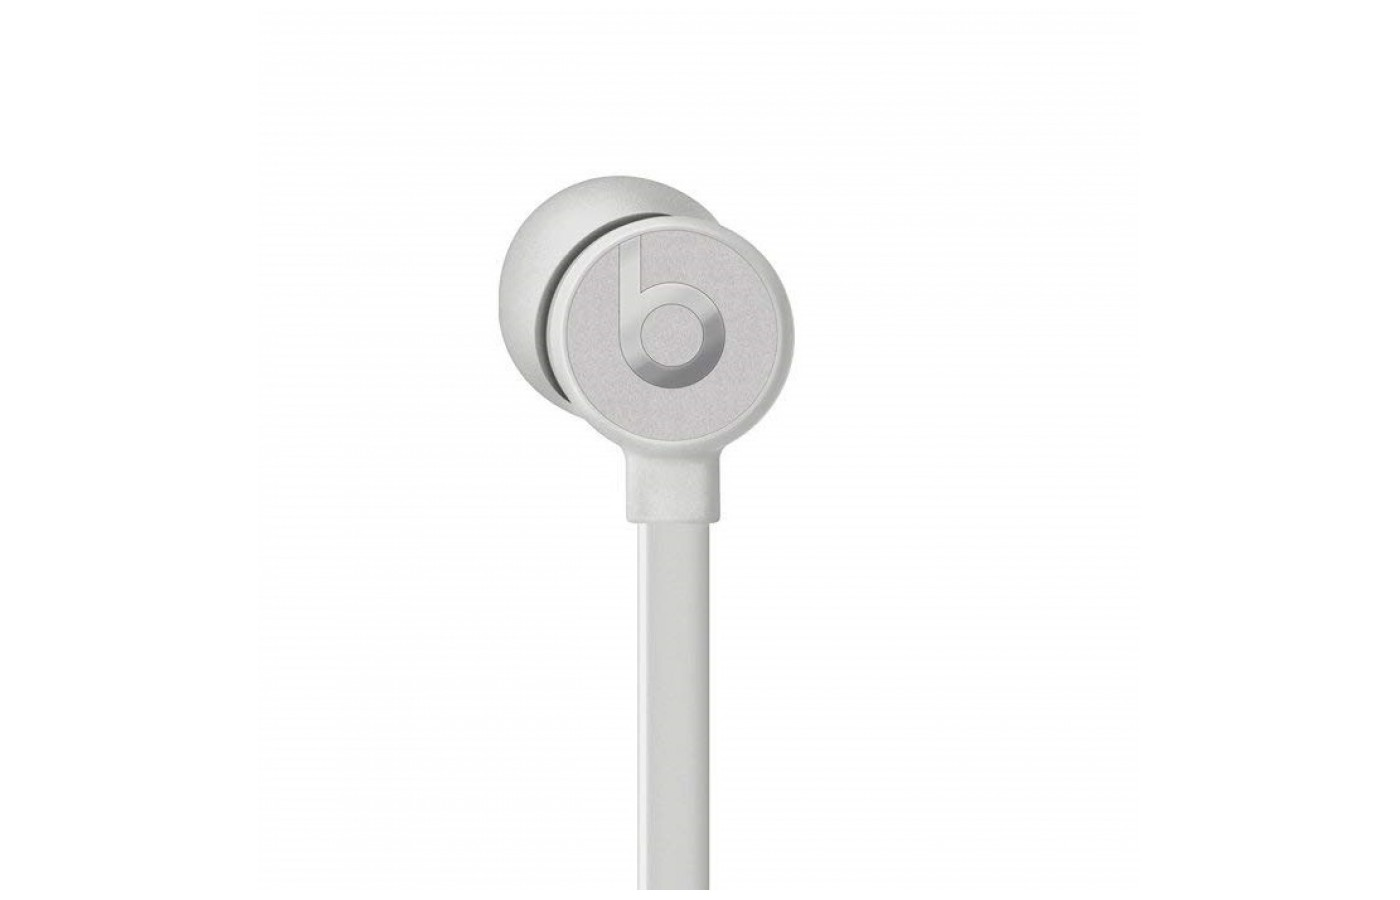 The Beats X offers fast fuel charging for 2 hour playback even when battery is low.